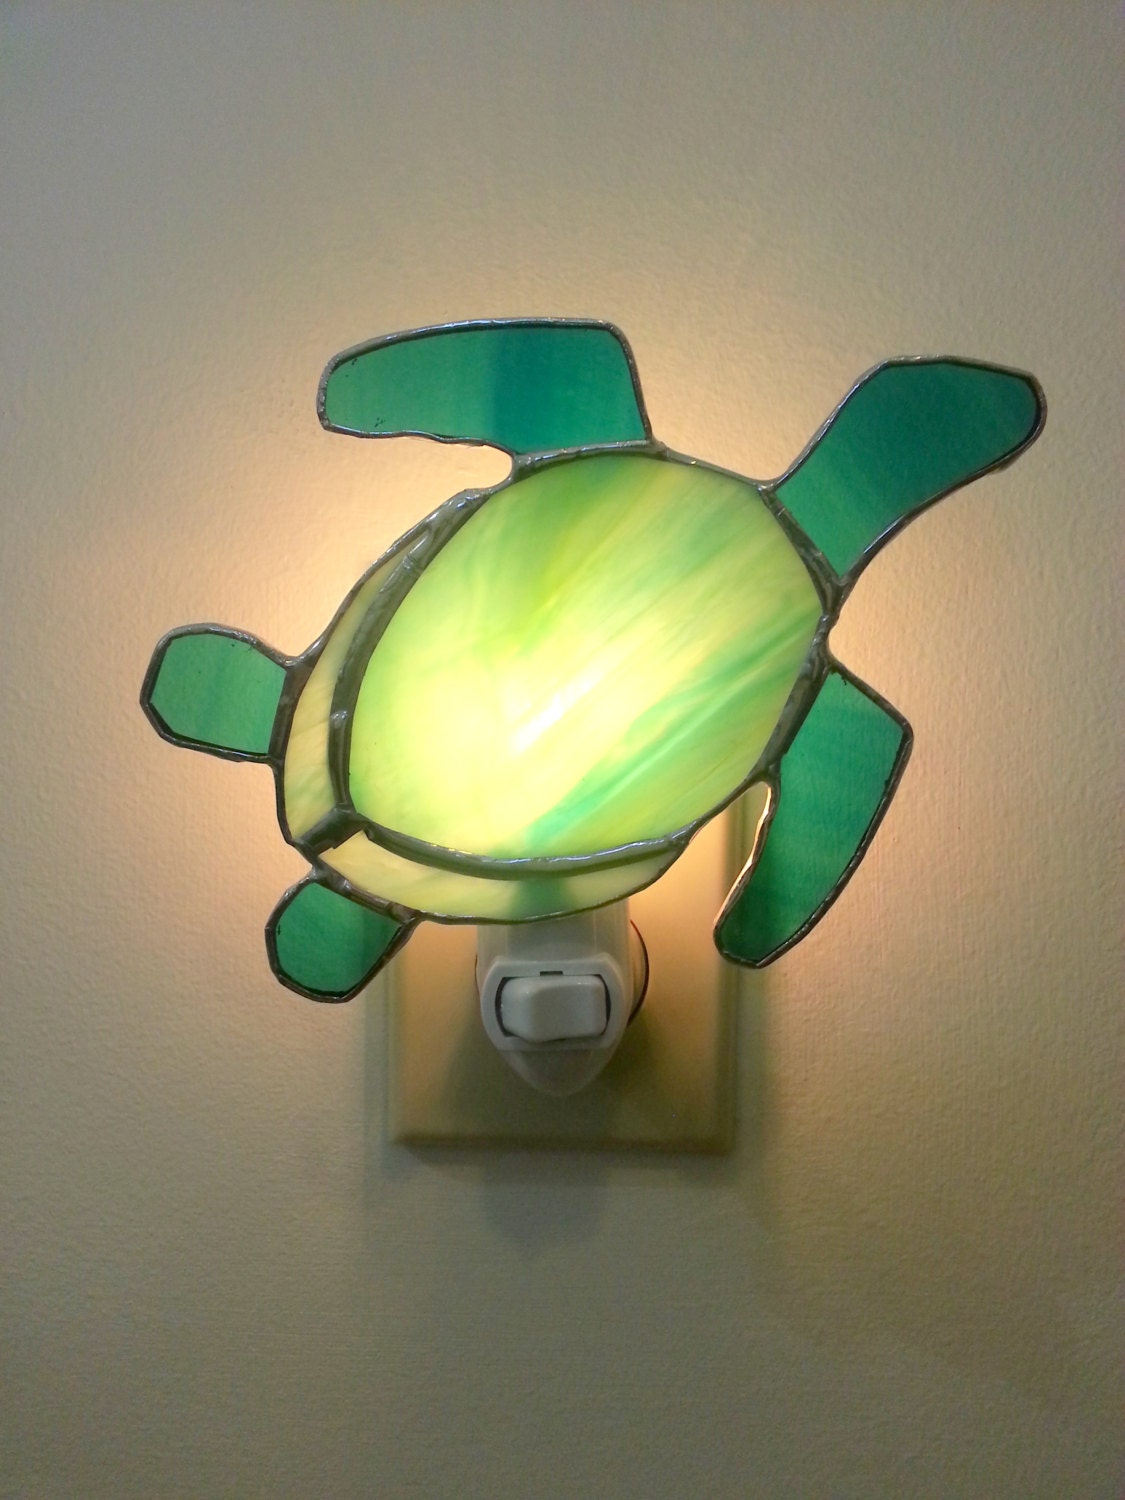 Items similar to stained glass sea turtle night light on etsy - Turtle nite light ...